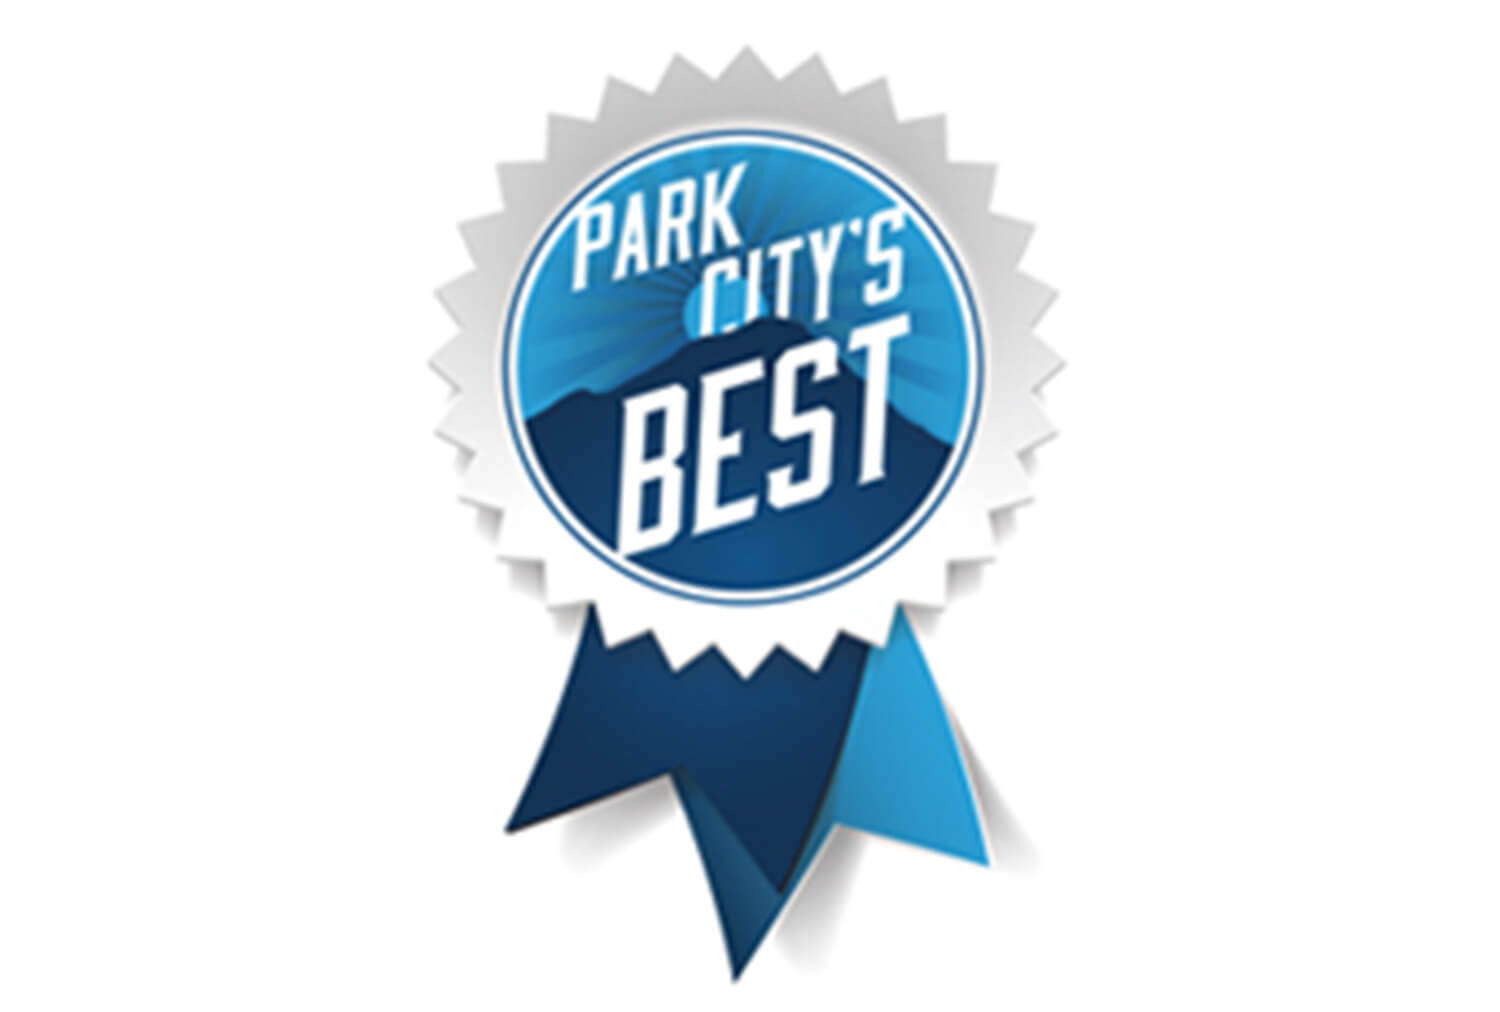 2014 Park City Best Awards | Westgate Park City Resort & Spa | Westgate Resorts